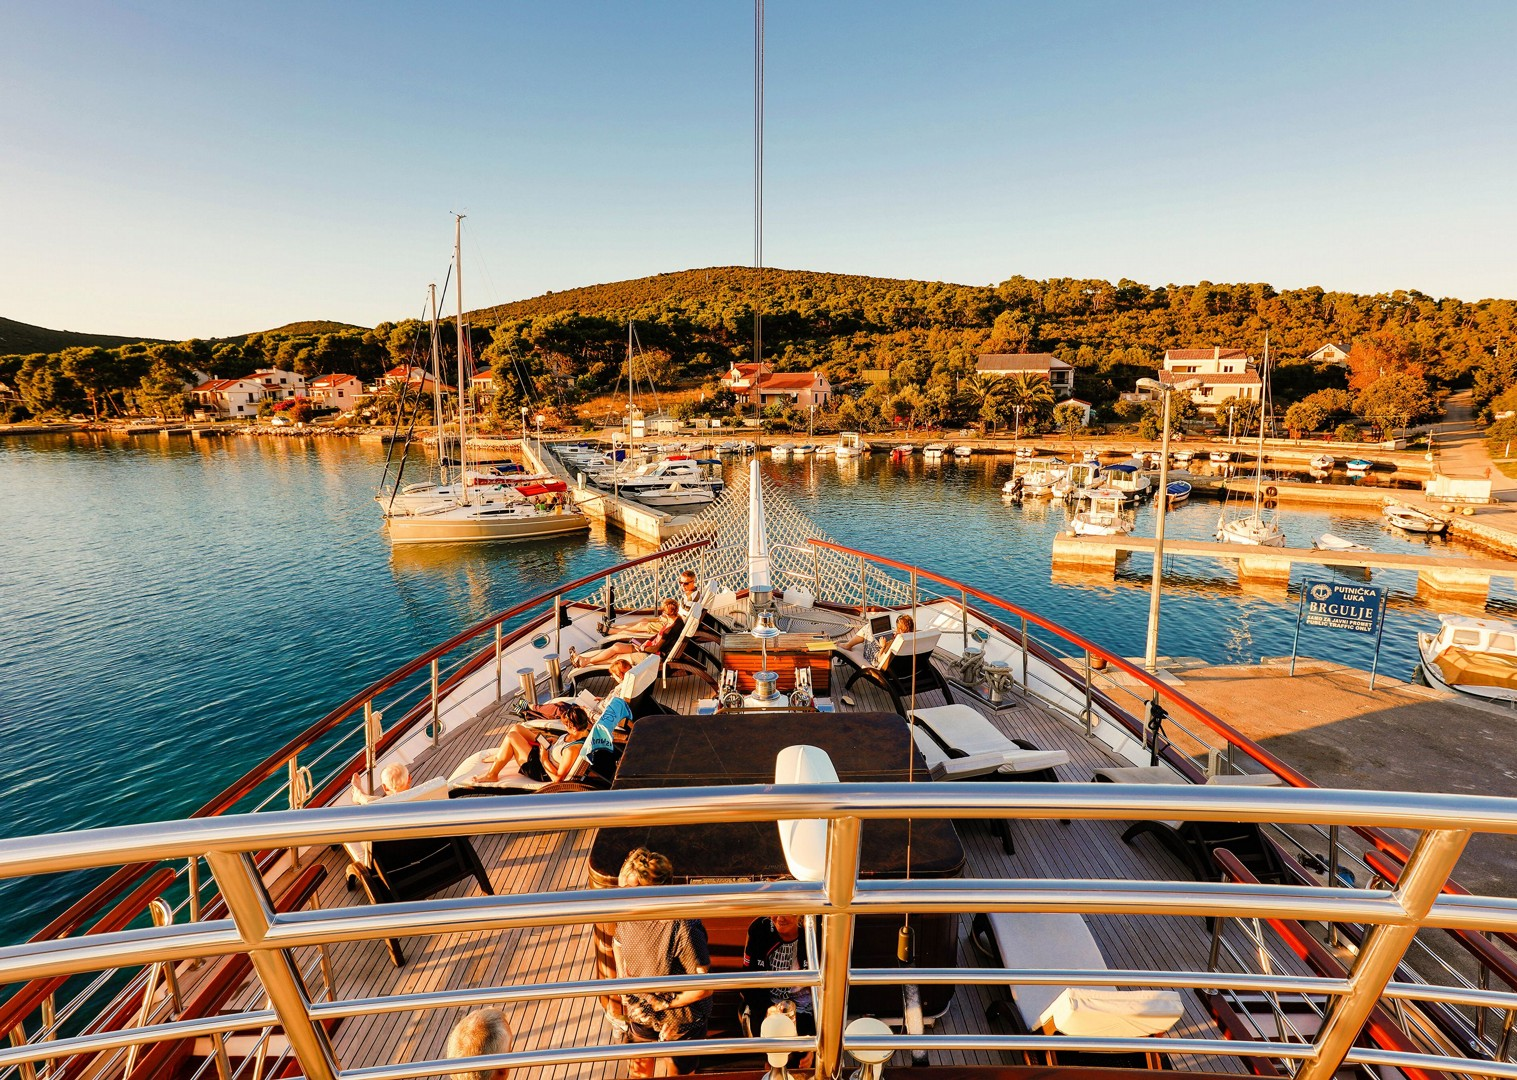 relax-yacht-and-cycle-tour-croatia.jpg - Croatia - Dalmatian National Parks and Islands Plus - Bike and Boat Holiday - Leisure Cycling